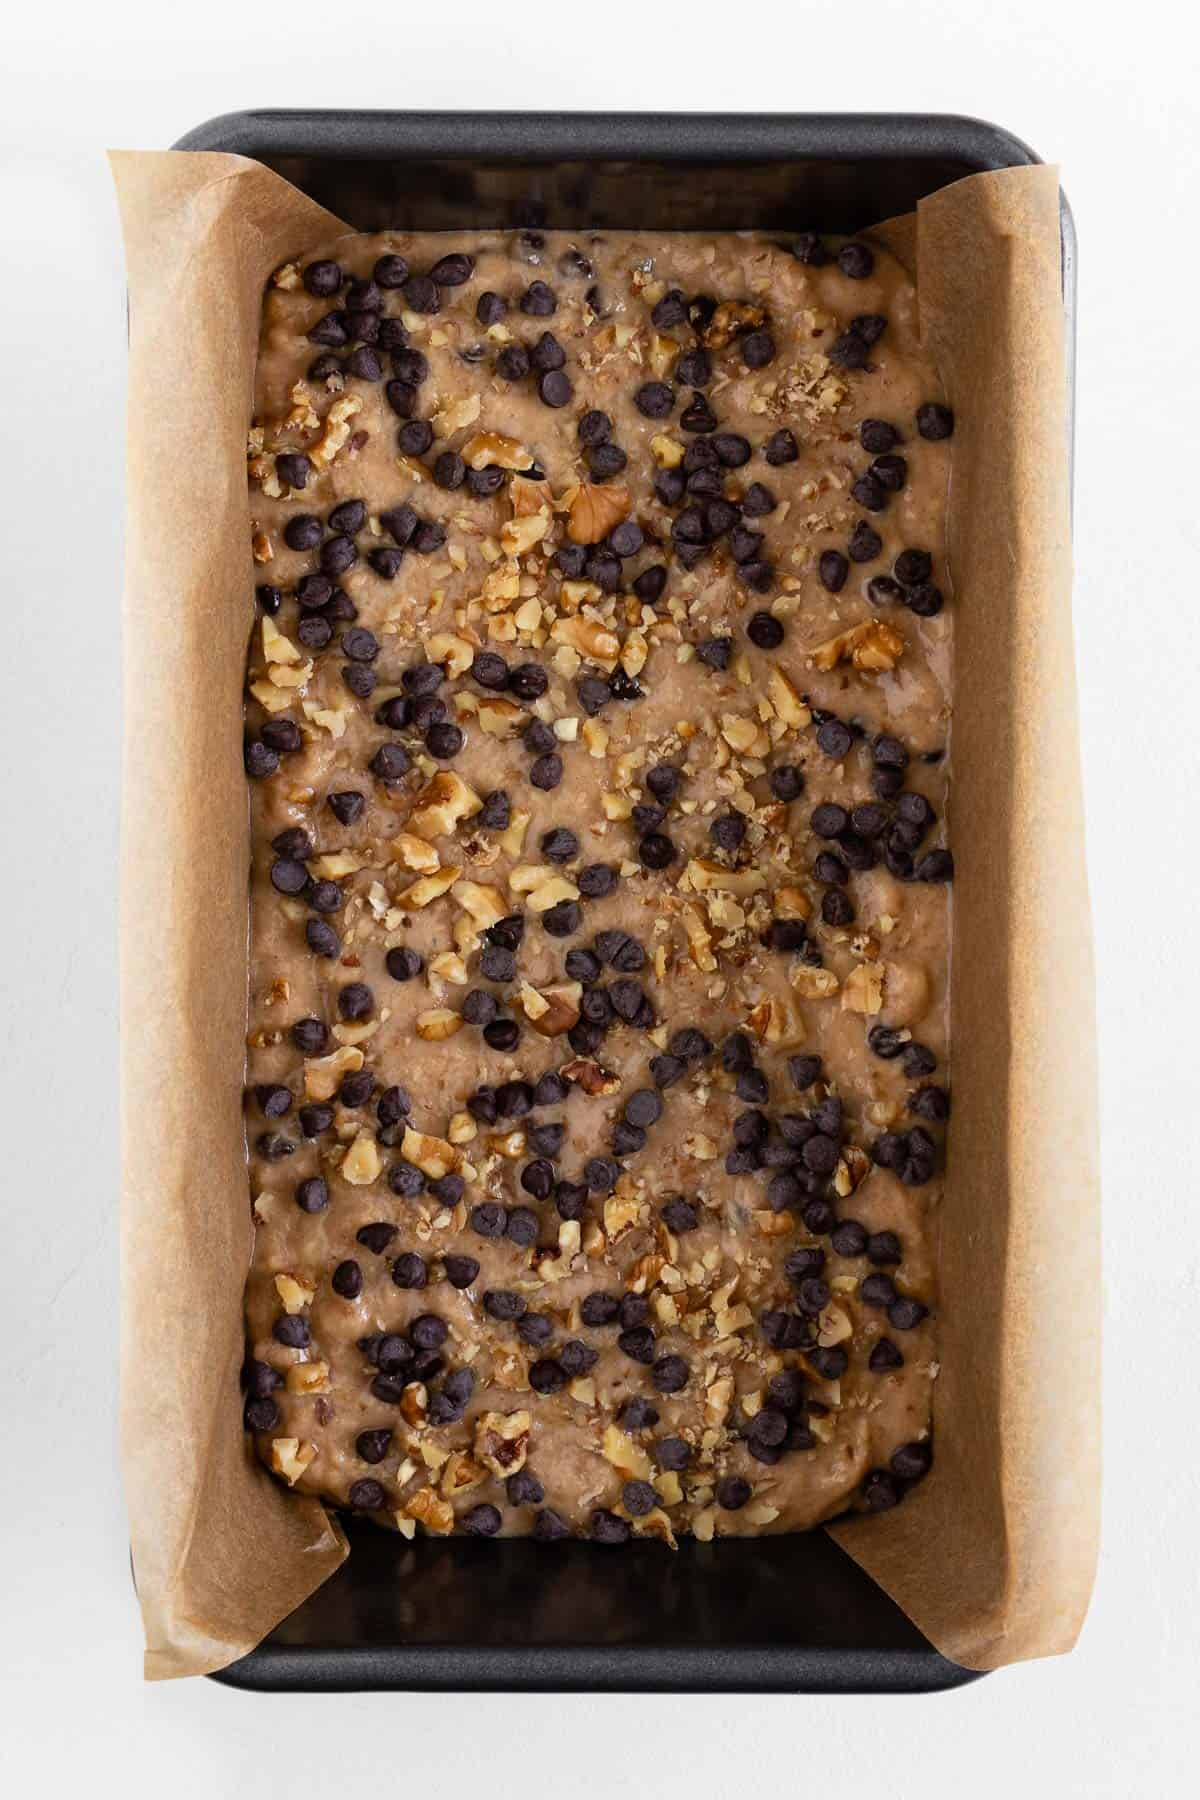 banana bread batter inside a loaf pan topped with crushed walnuts and chocolate chips